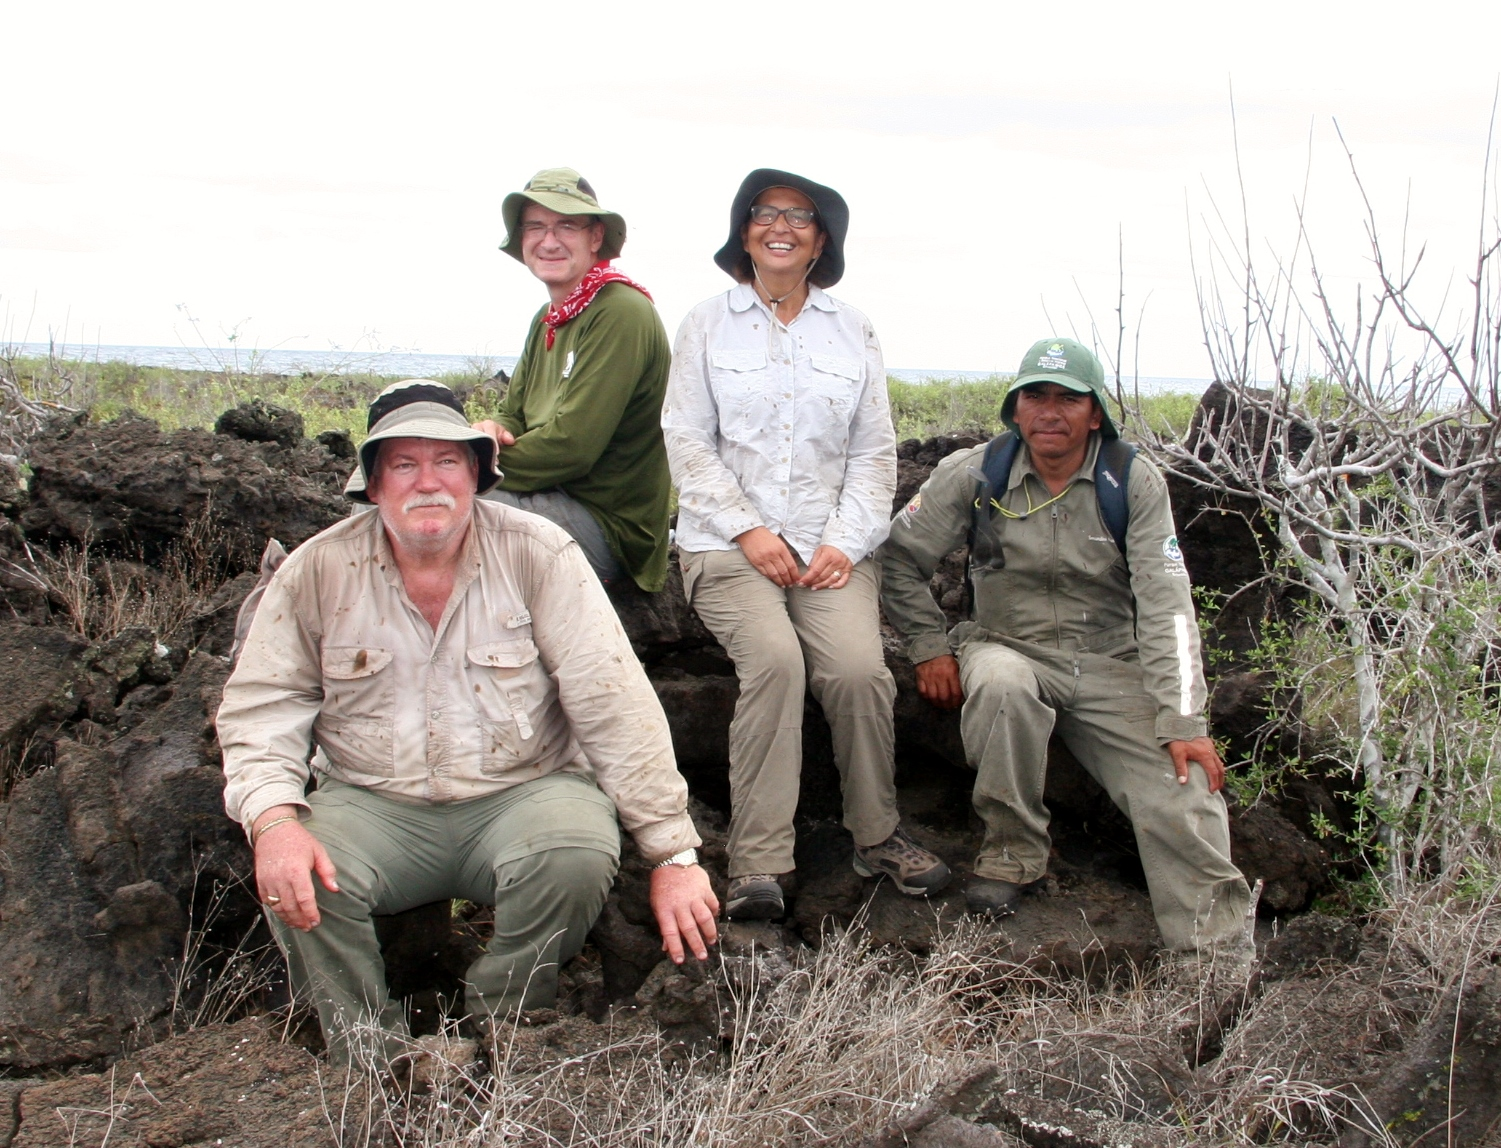 My team: Joe Flannagan, James Gibbs, Gisella Caccone and Secundino Masaquizo